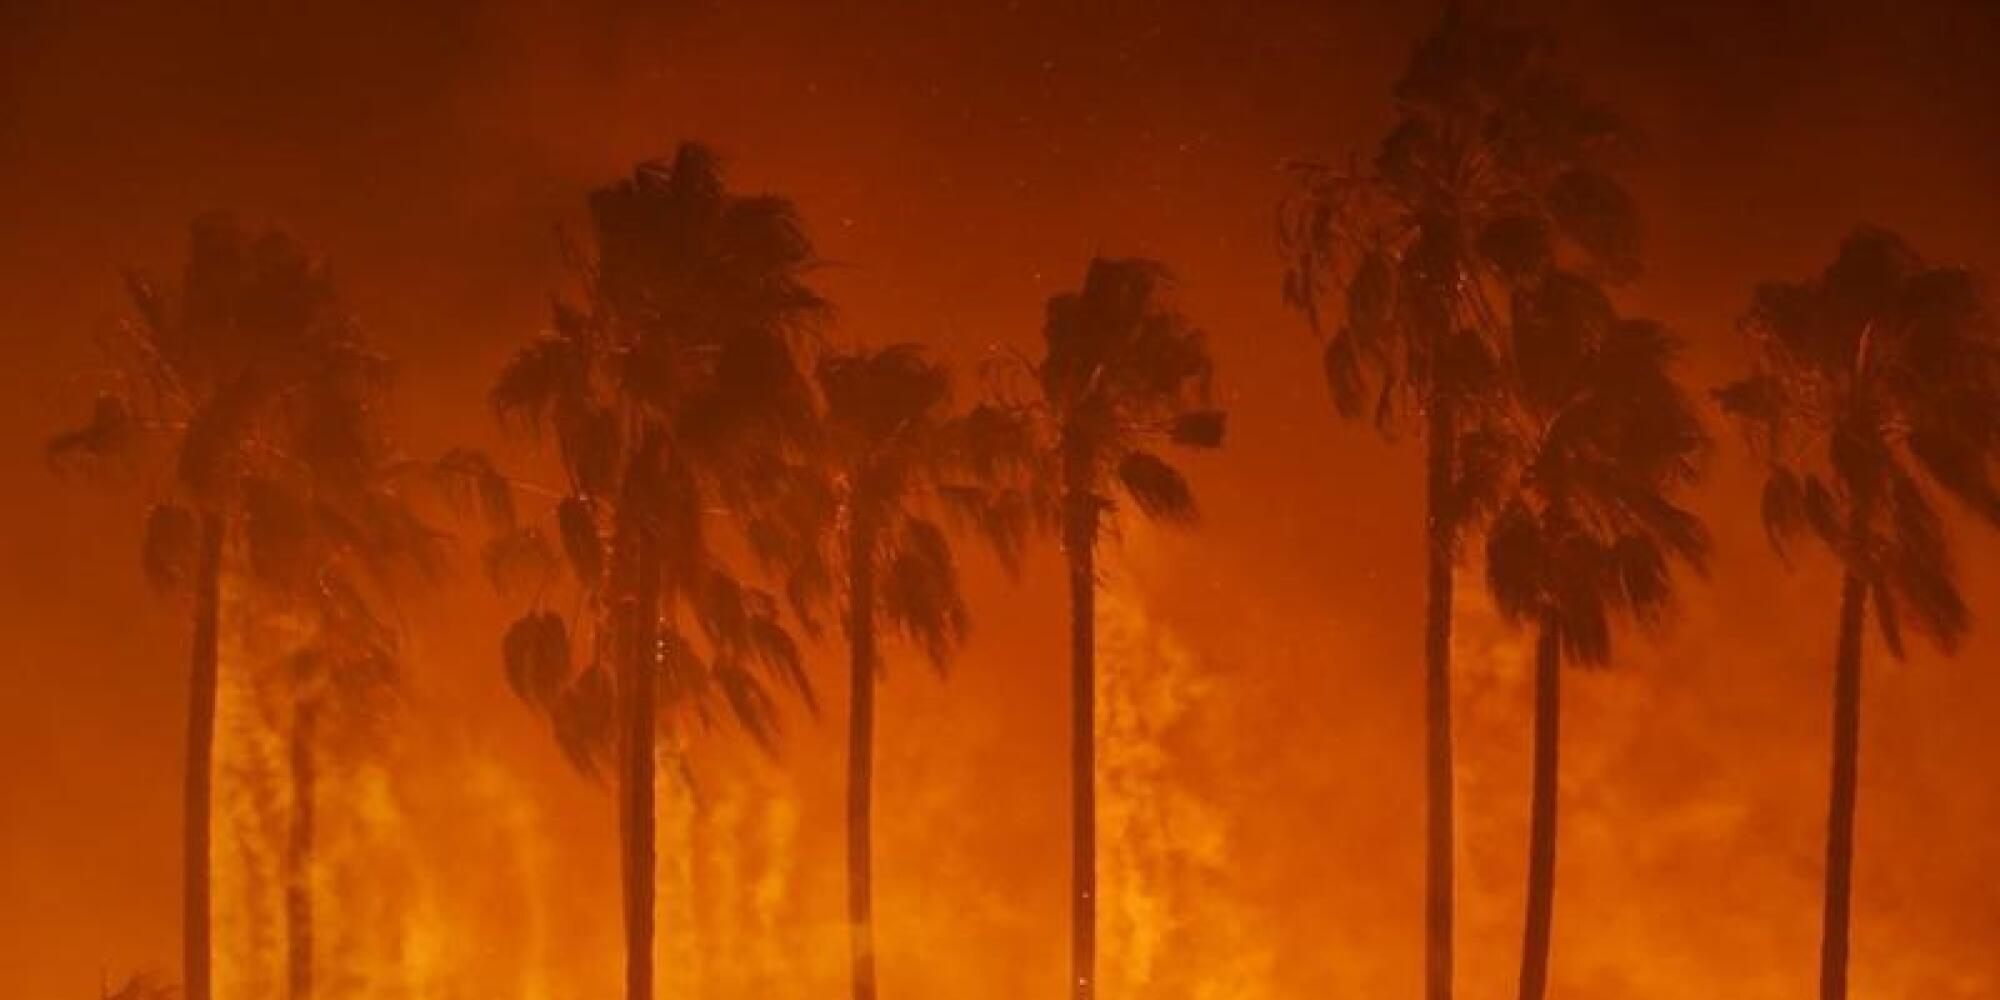 Southern California fires live updates: New evacuation orders issued for Carpinteria and Montecito as Thomas fire again rages out of control